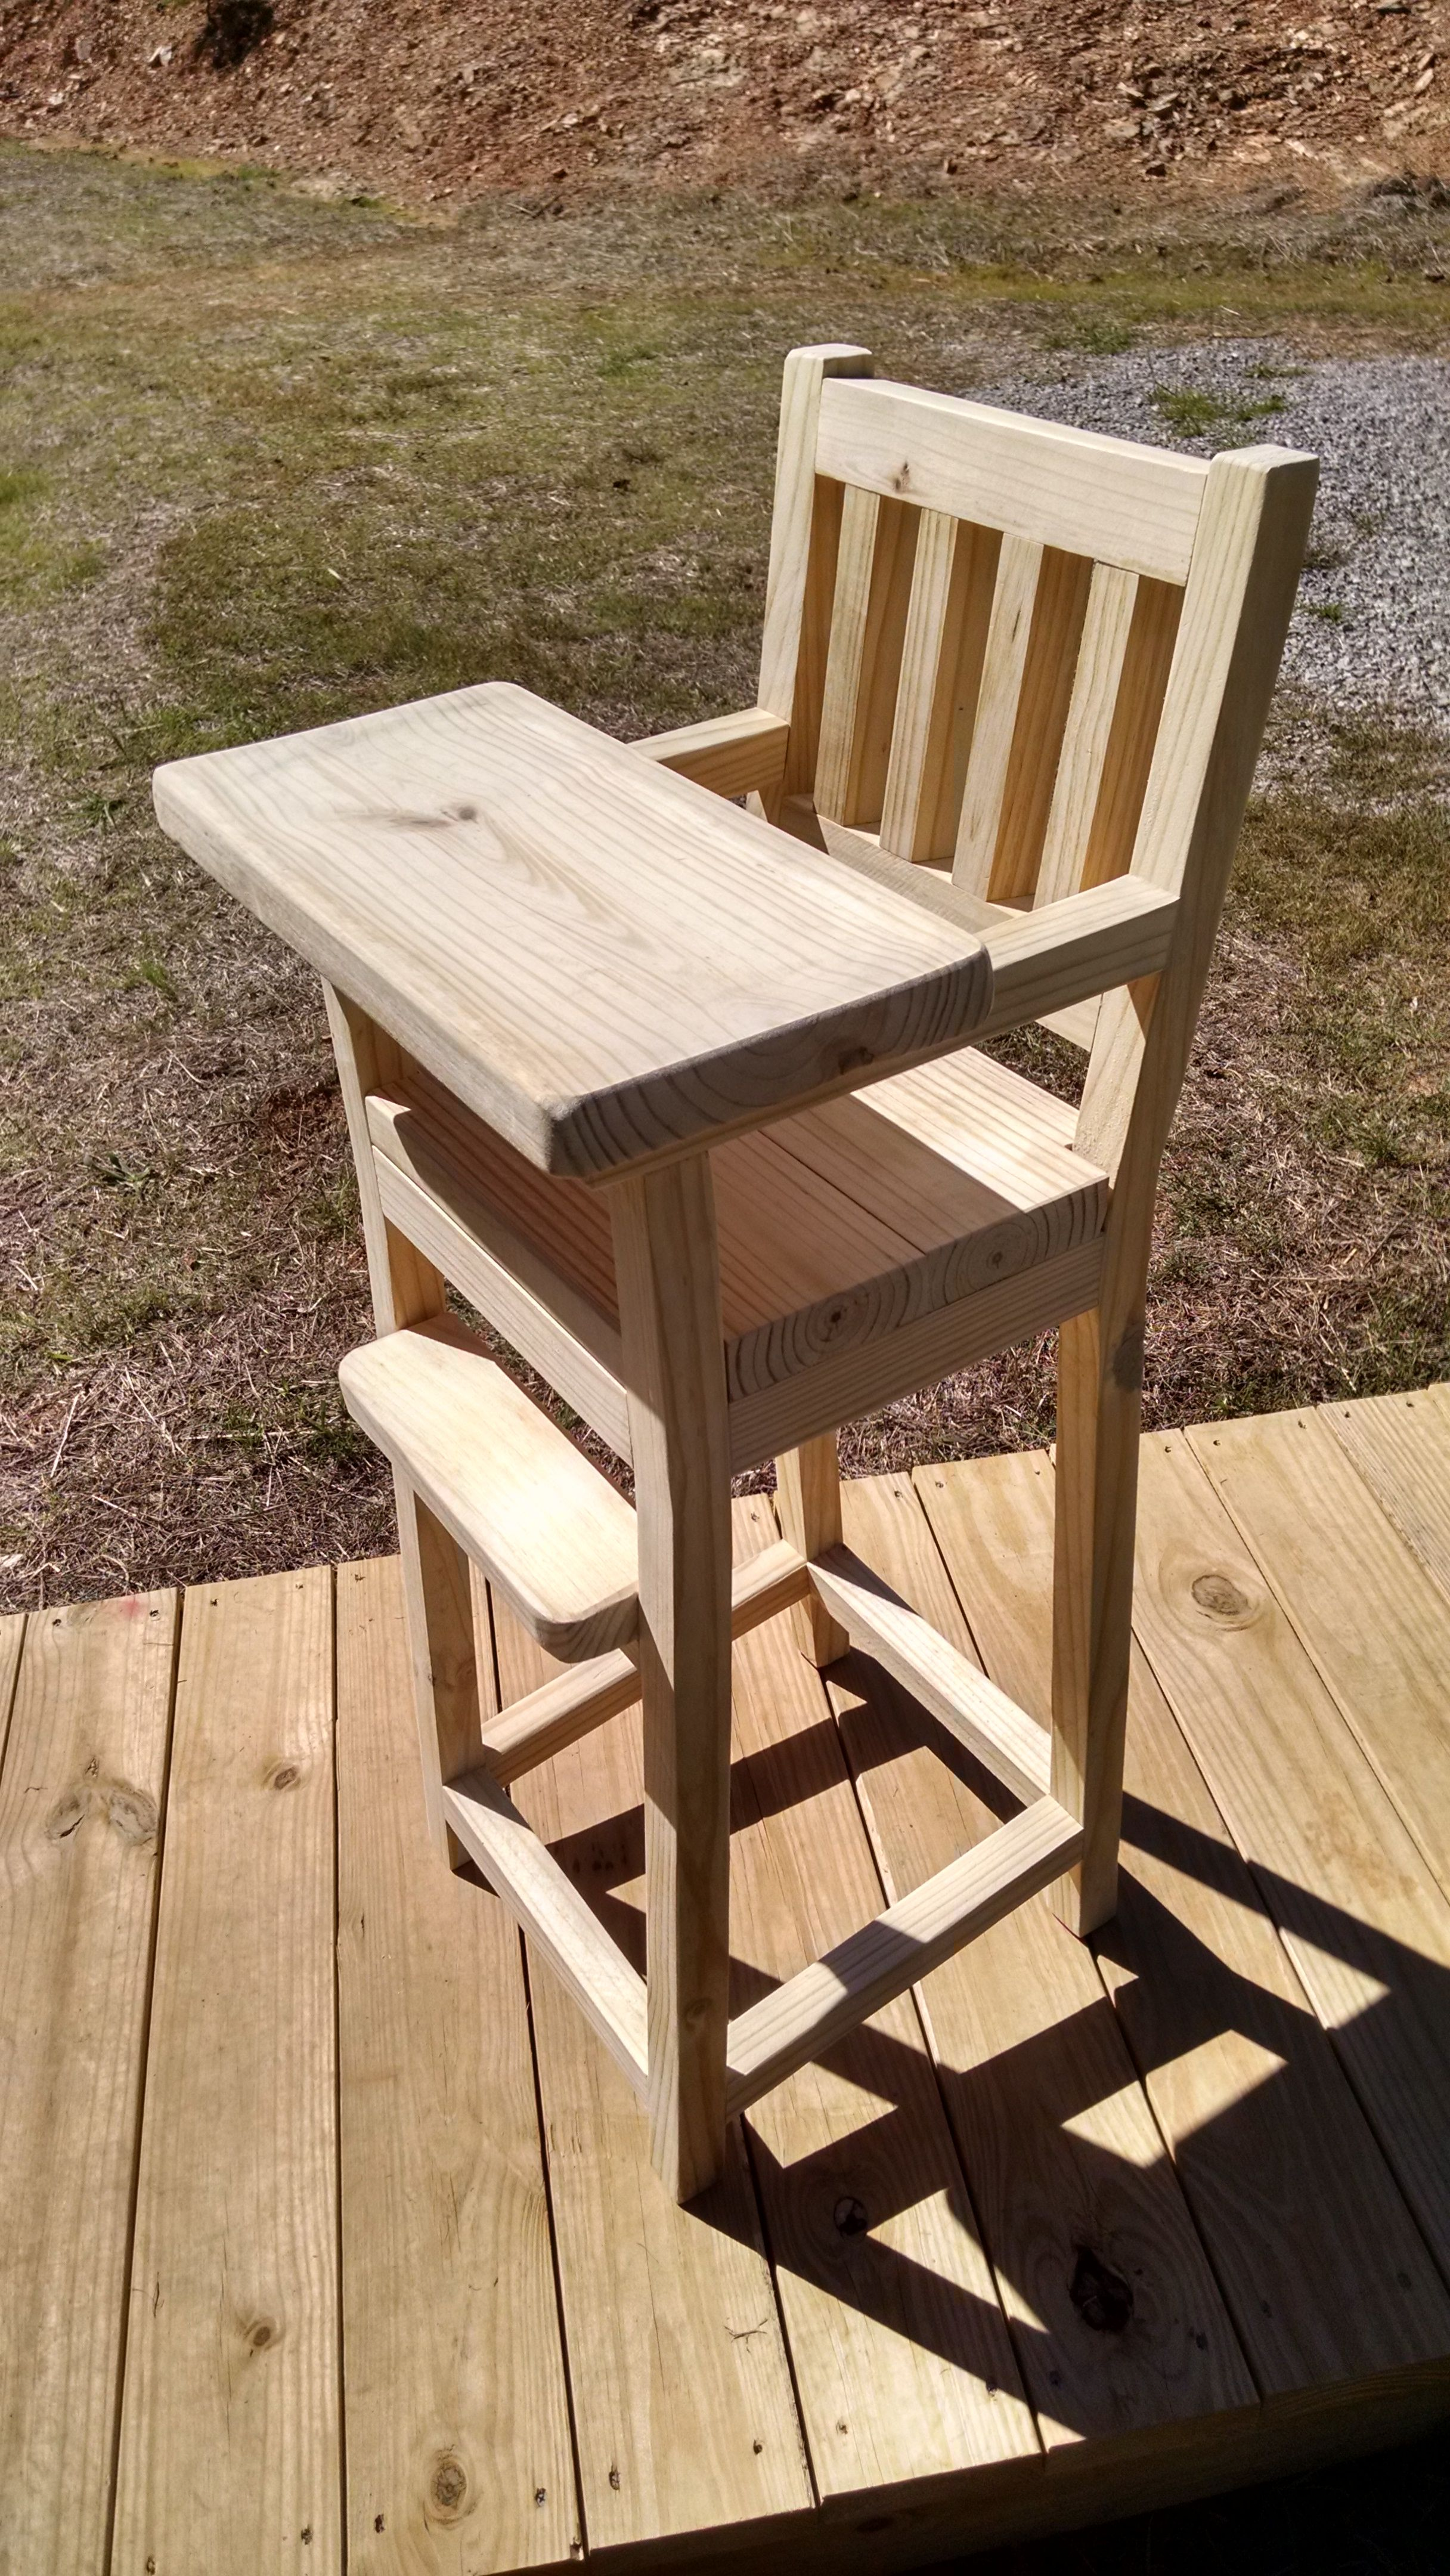 Wooden Hand Made High Chair Rustic Farm Style Furniture Picnic